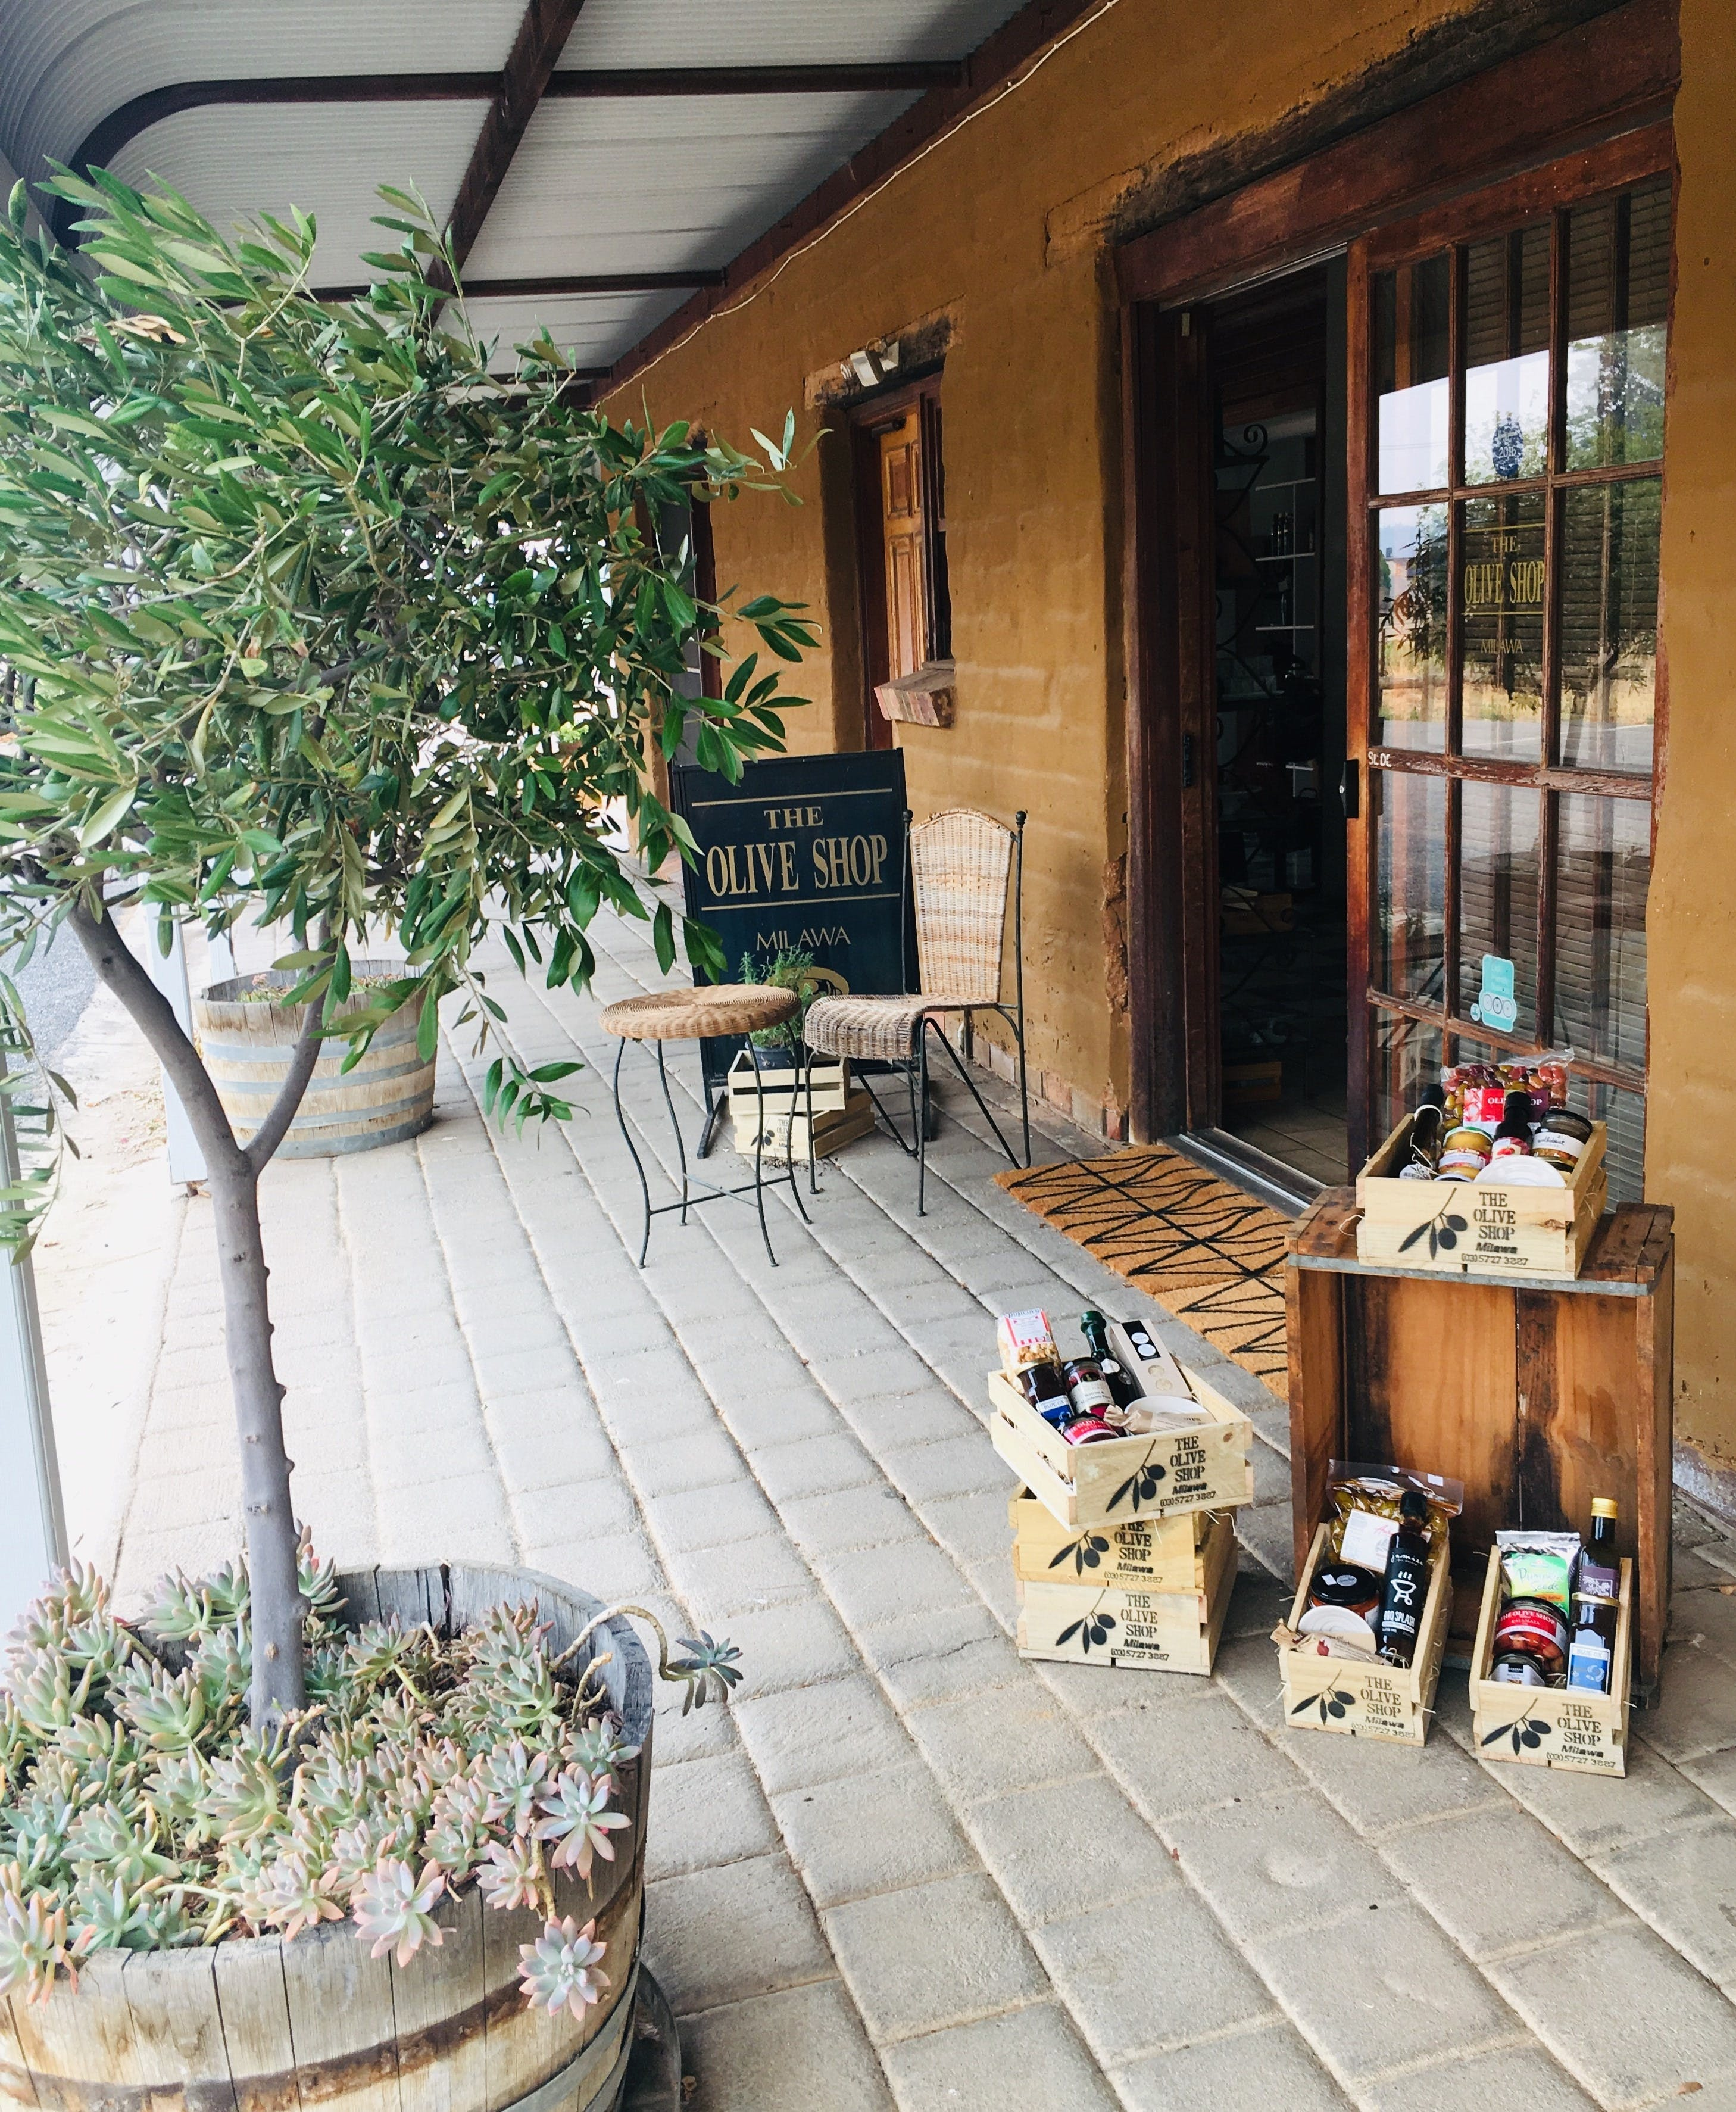 The Olive Shop - Milawa - Attractions Perth